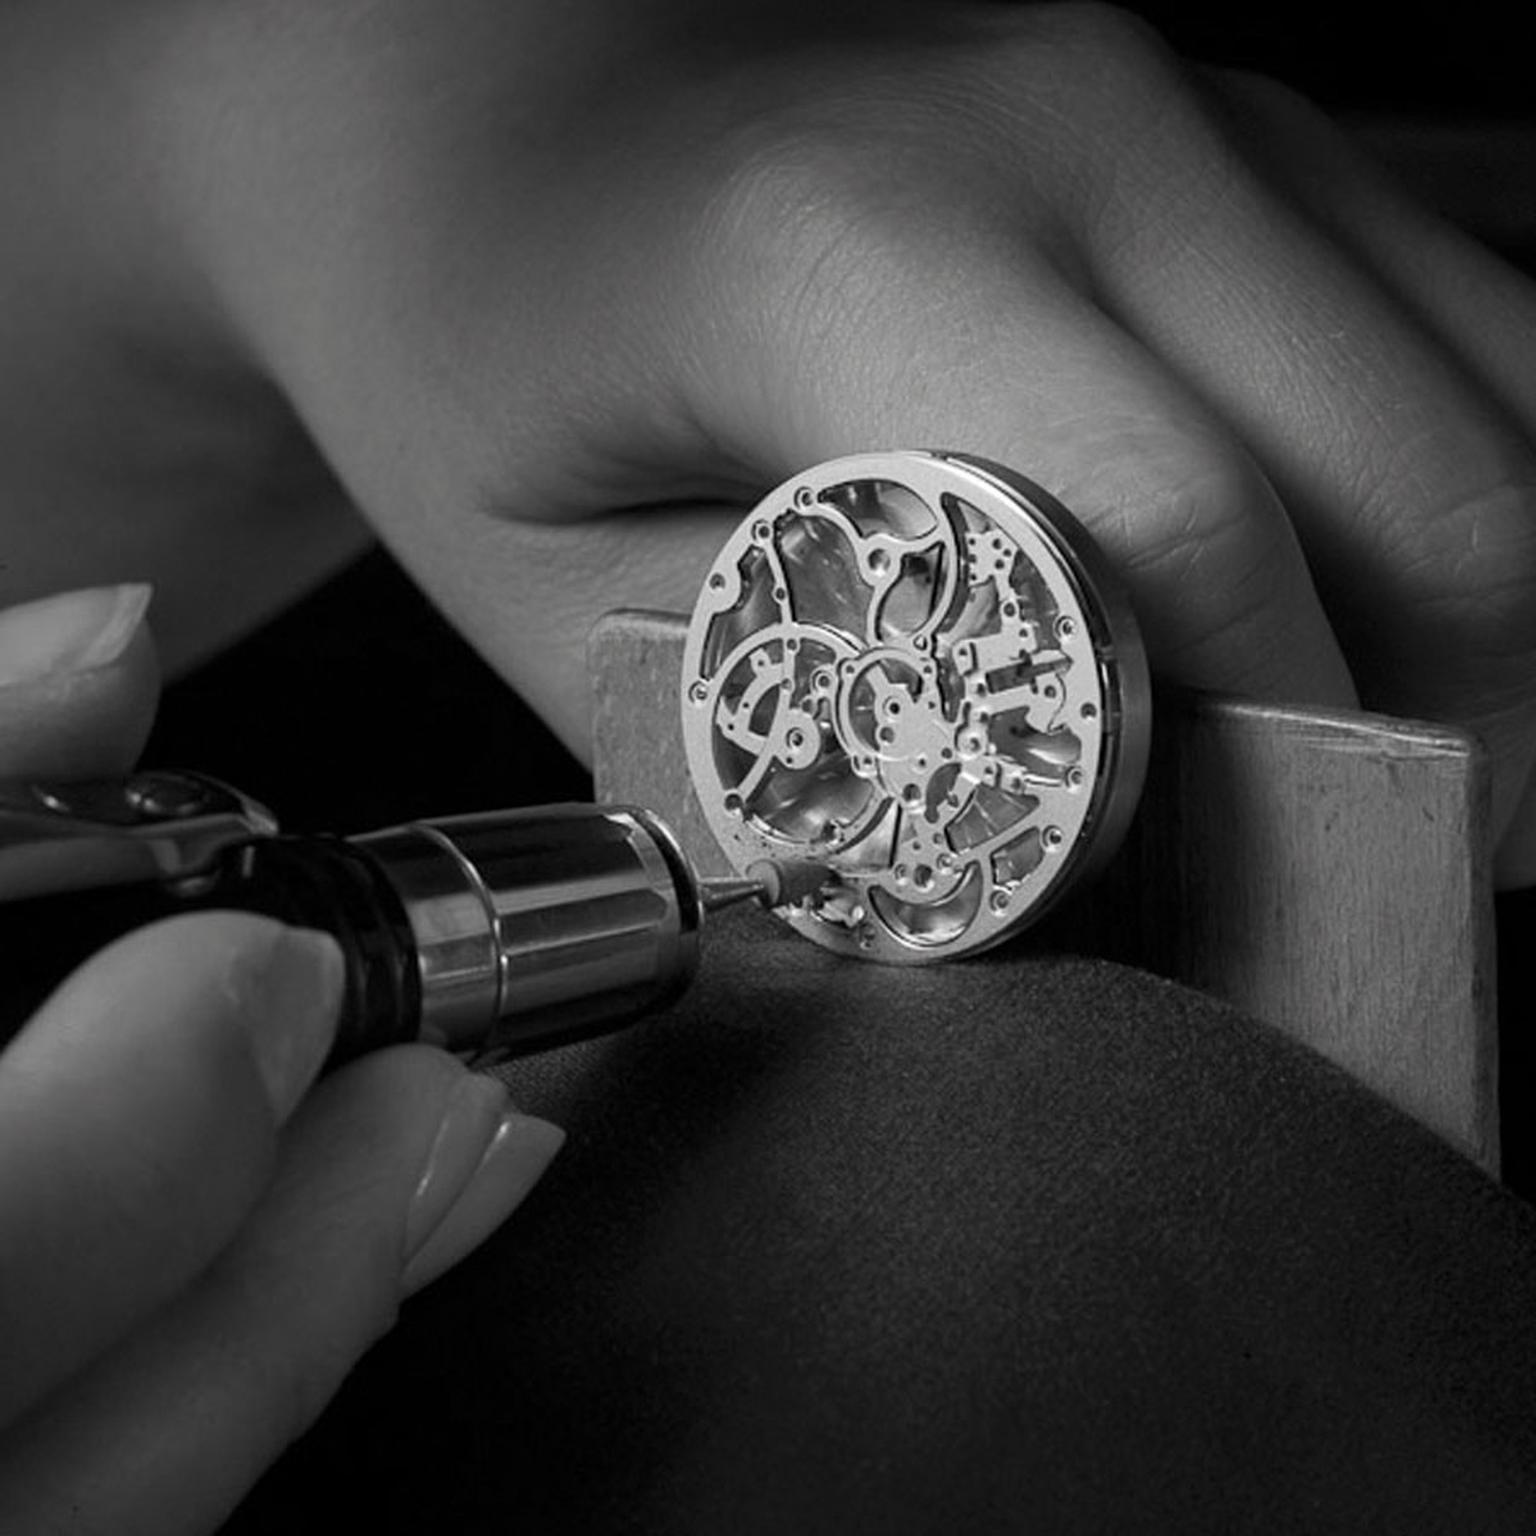 Piaget Altiplano Skeleton Hand bevelling of the mainplate